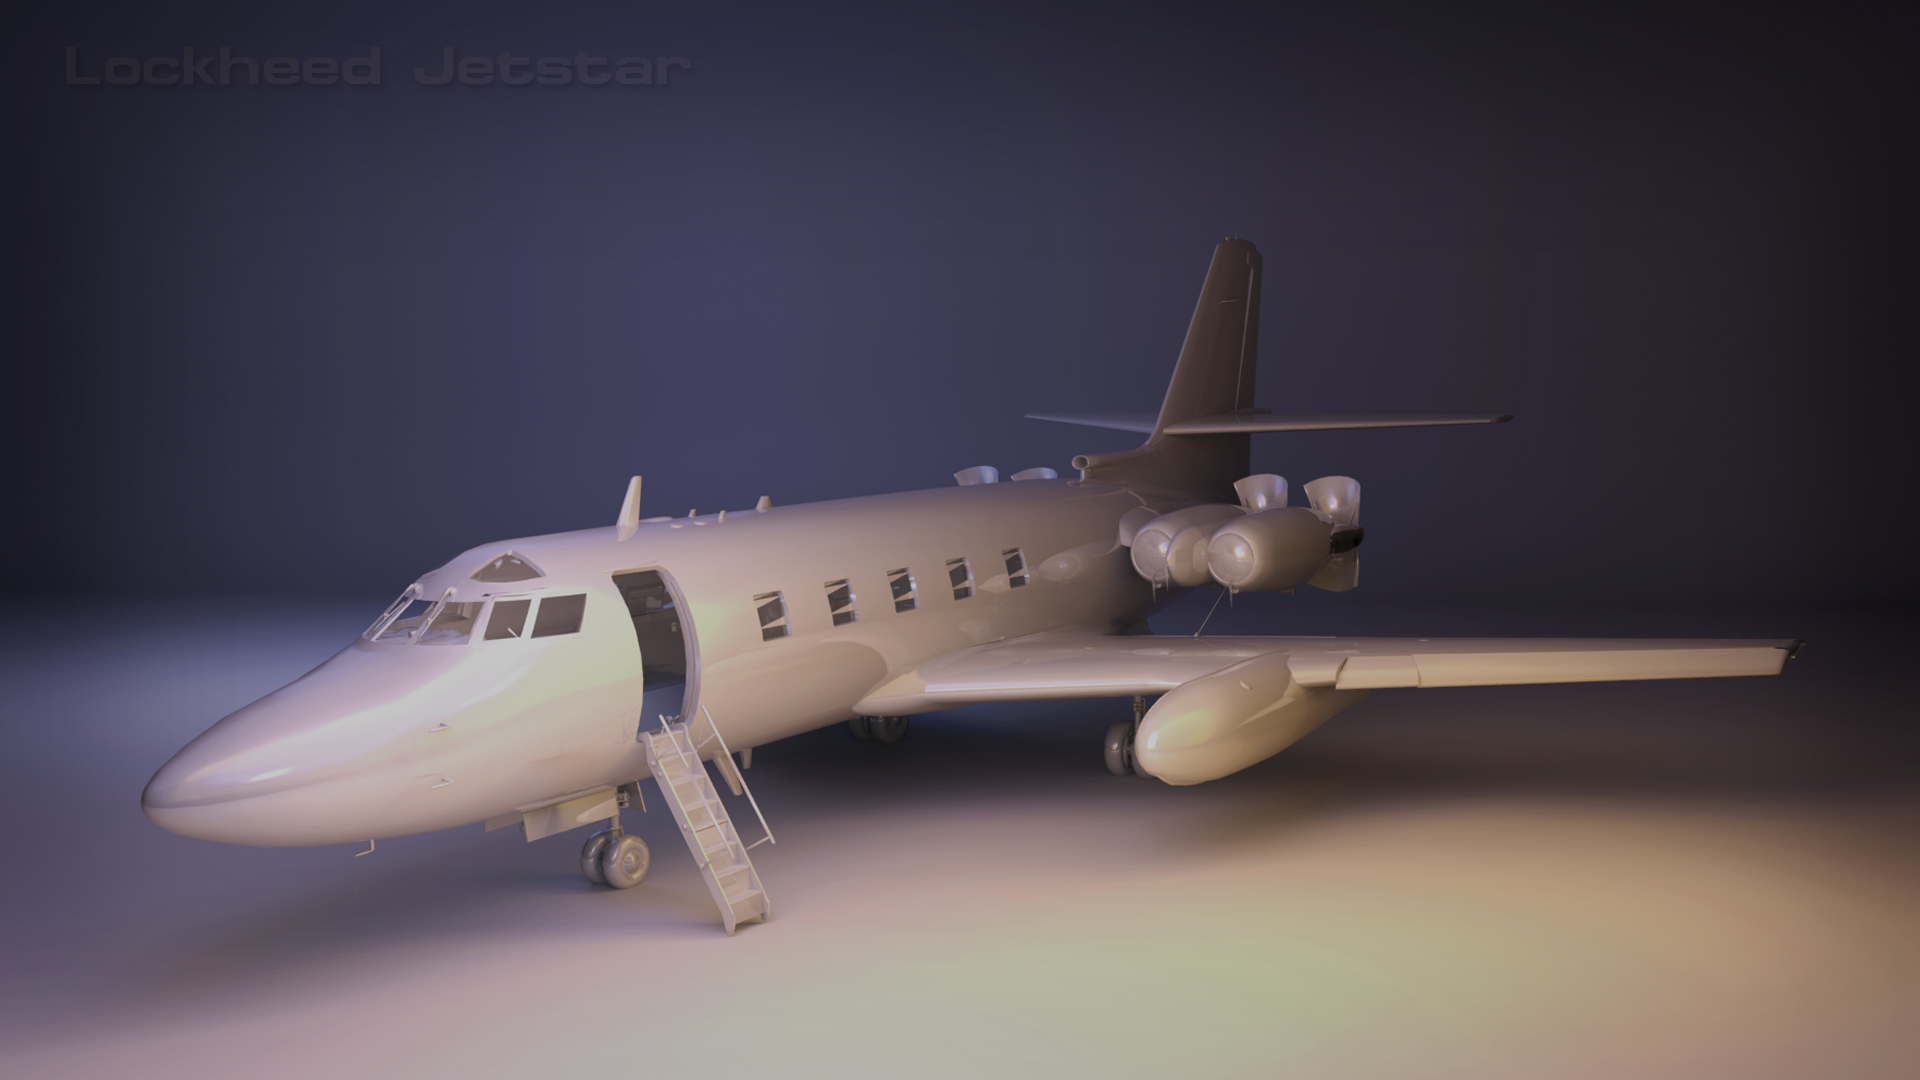 Lockheed Jetstar Project for FSX, P3D and P3D 64-bit